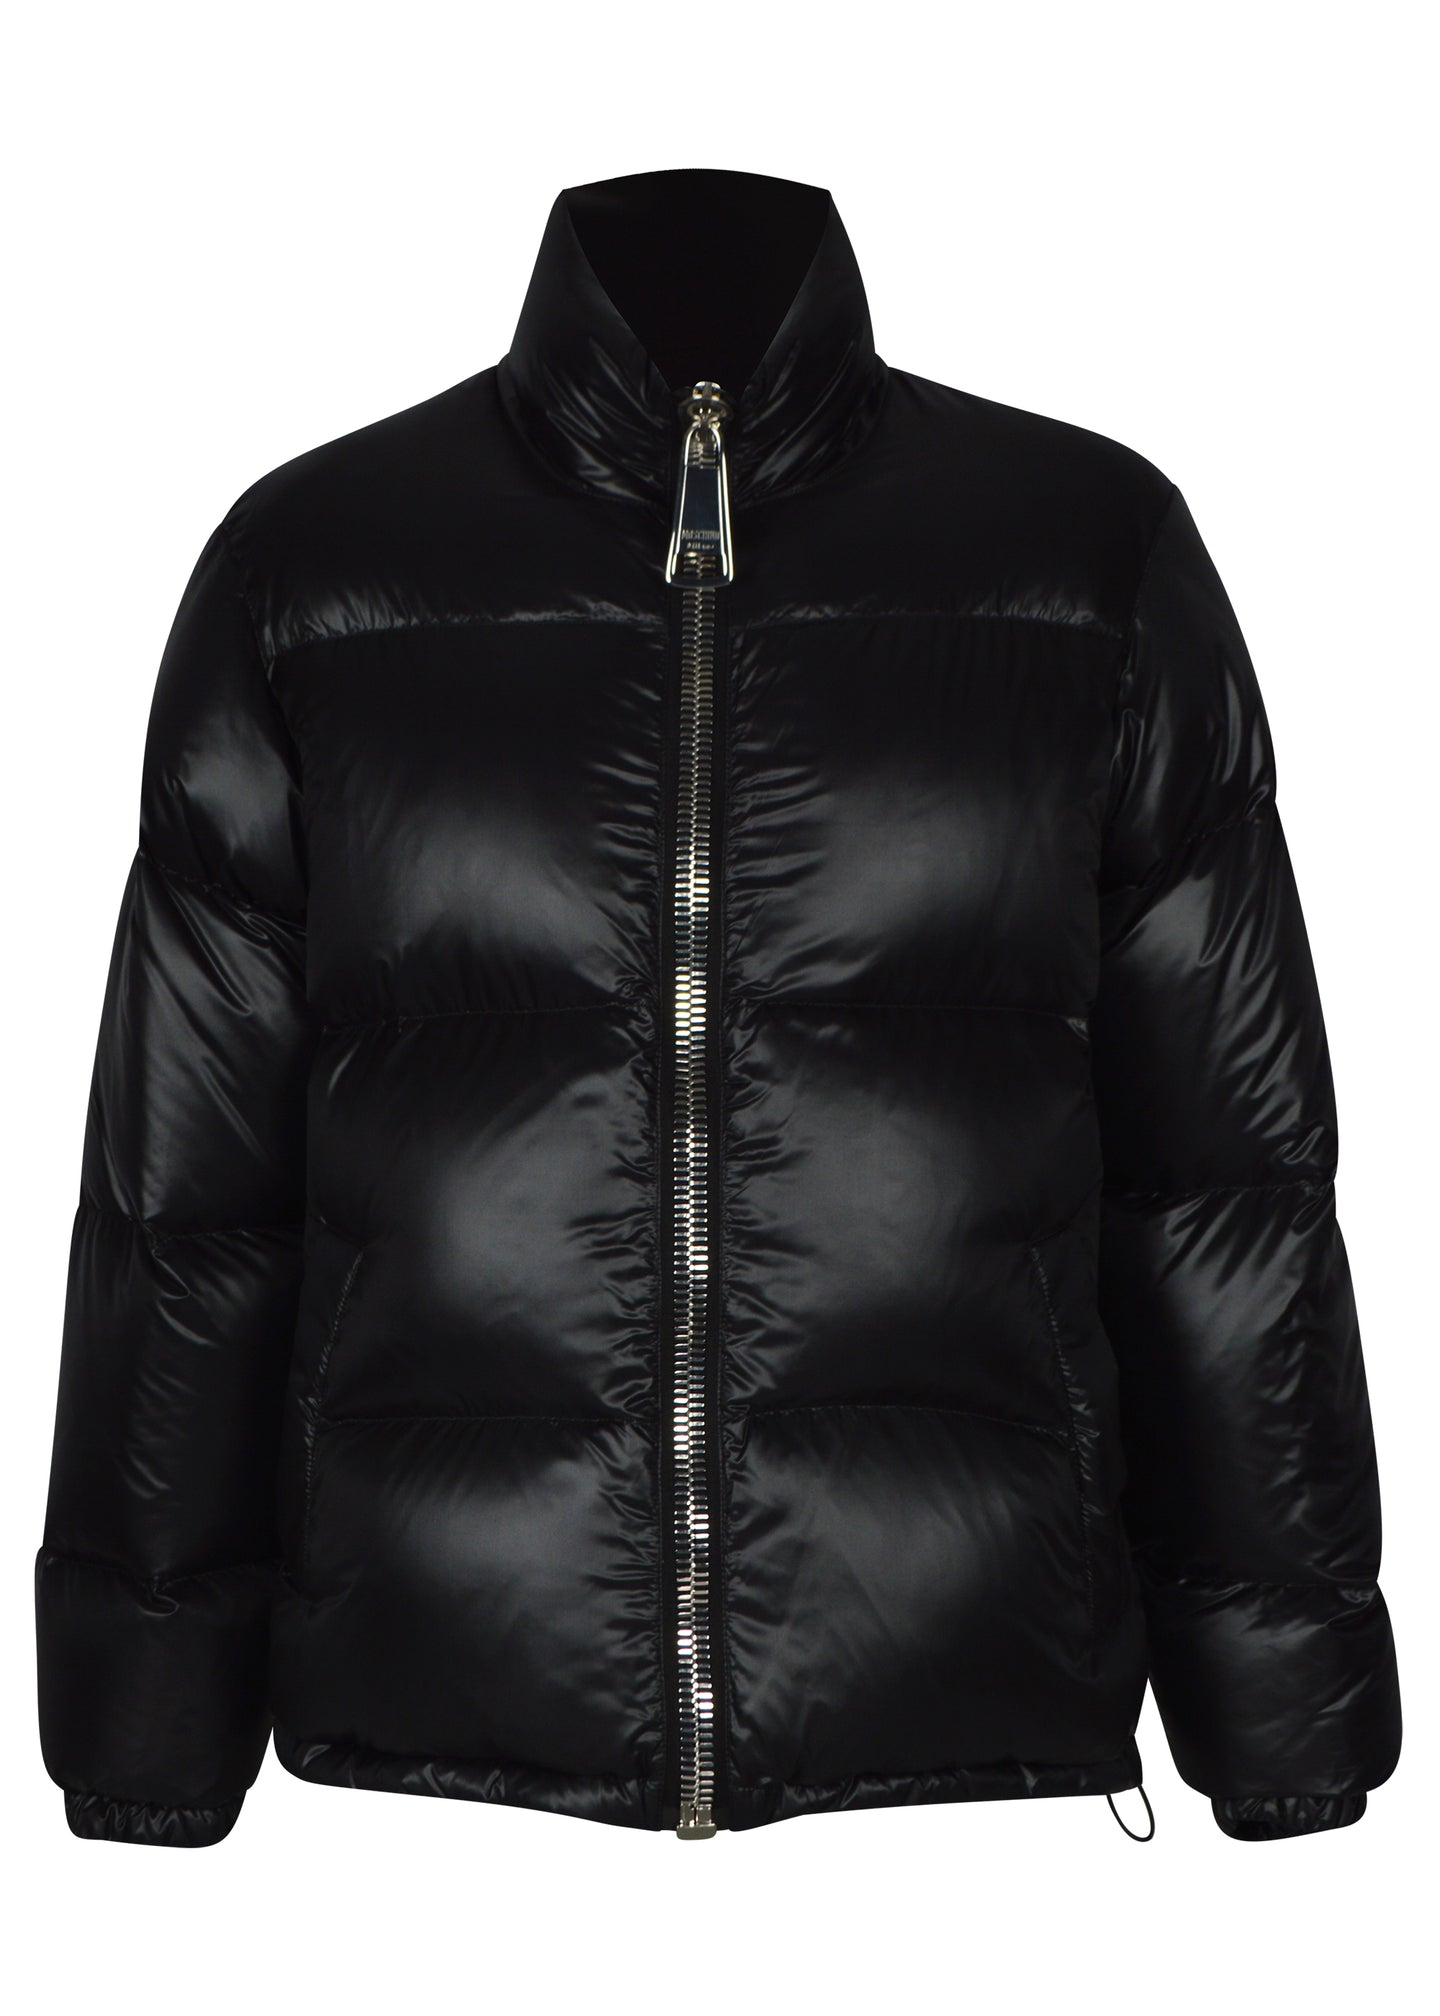 Moschino - Lightweight Shiny Down Puffer MOSCHINO Logo Back - 100107 - A0641 - Black